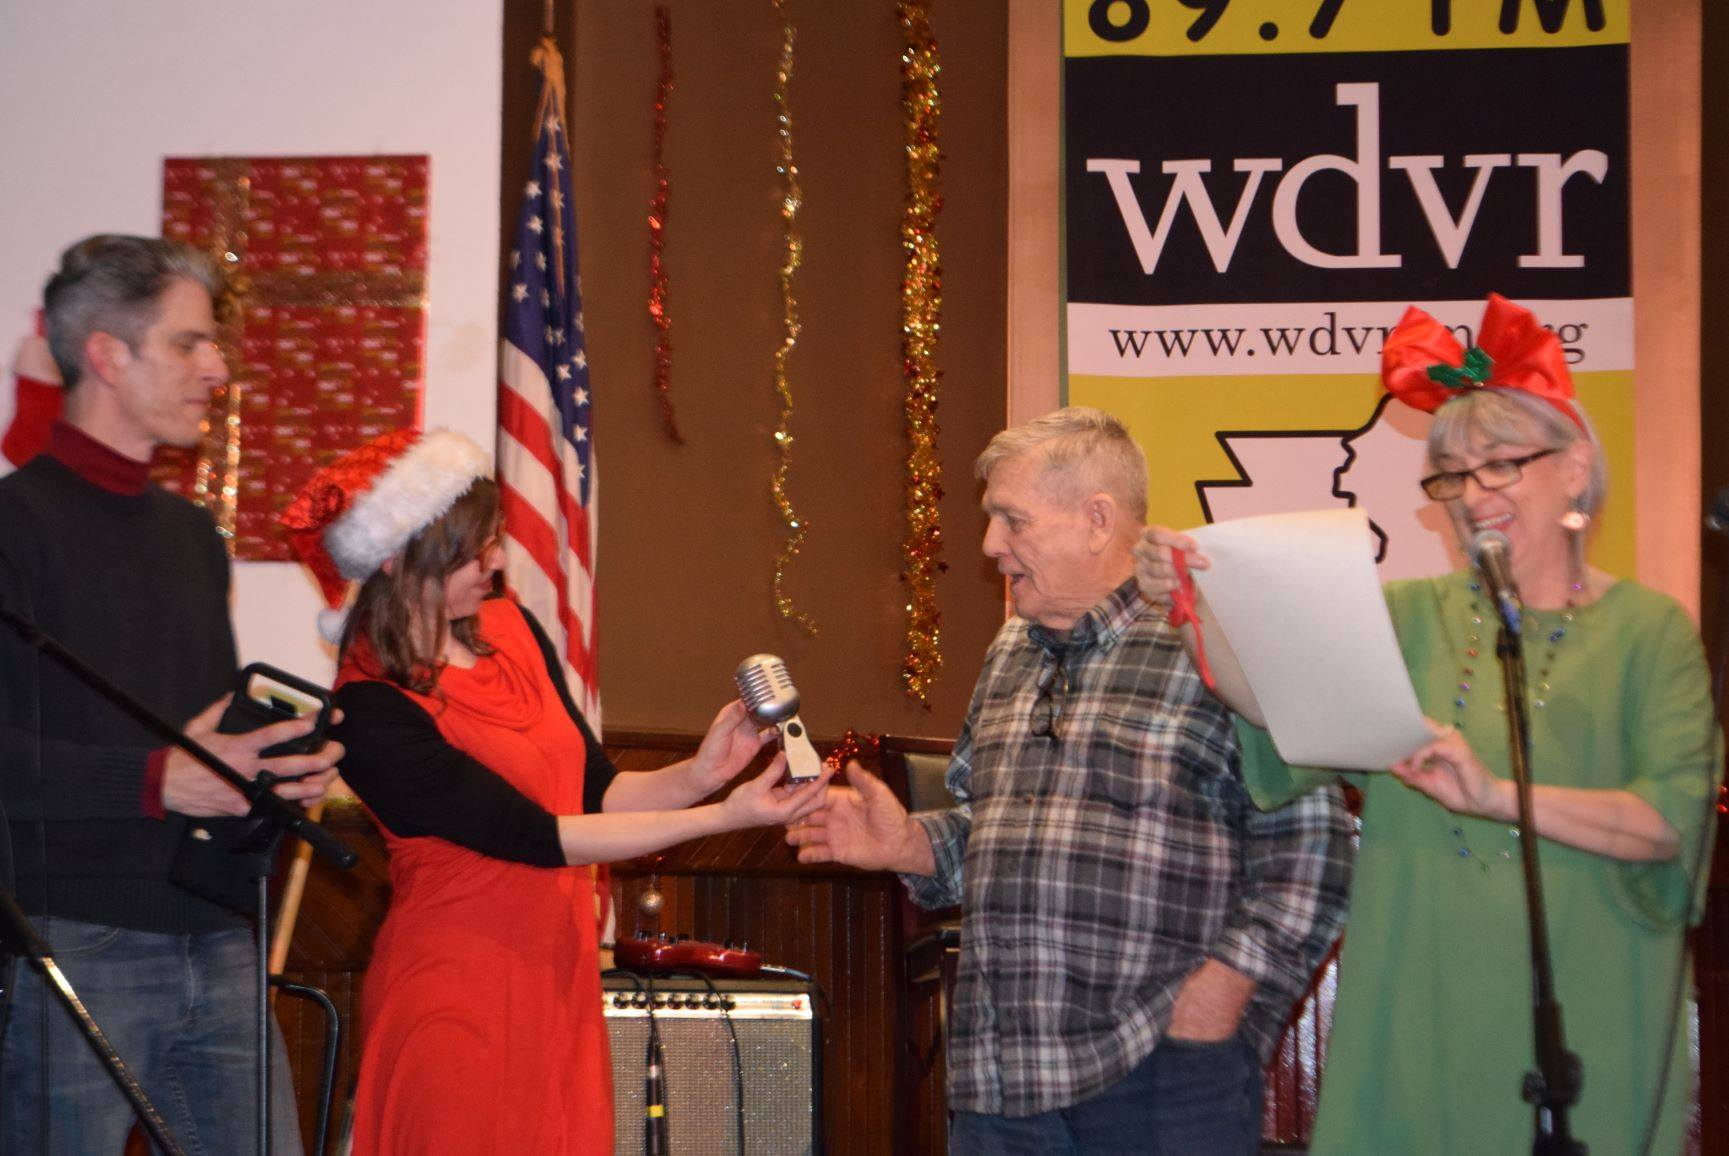 Charlie being honored for his contribution to WDVR